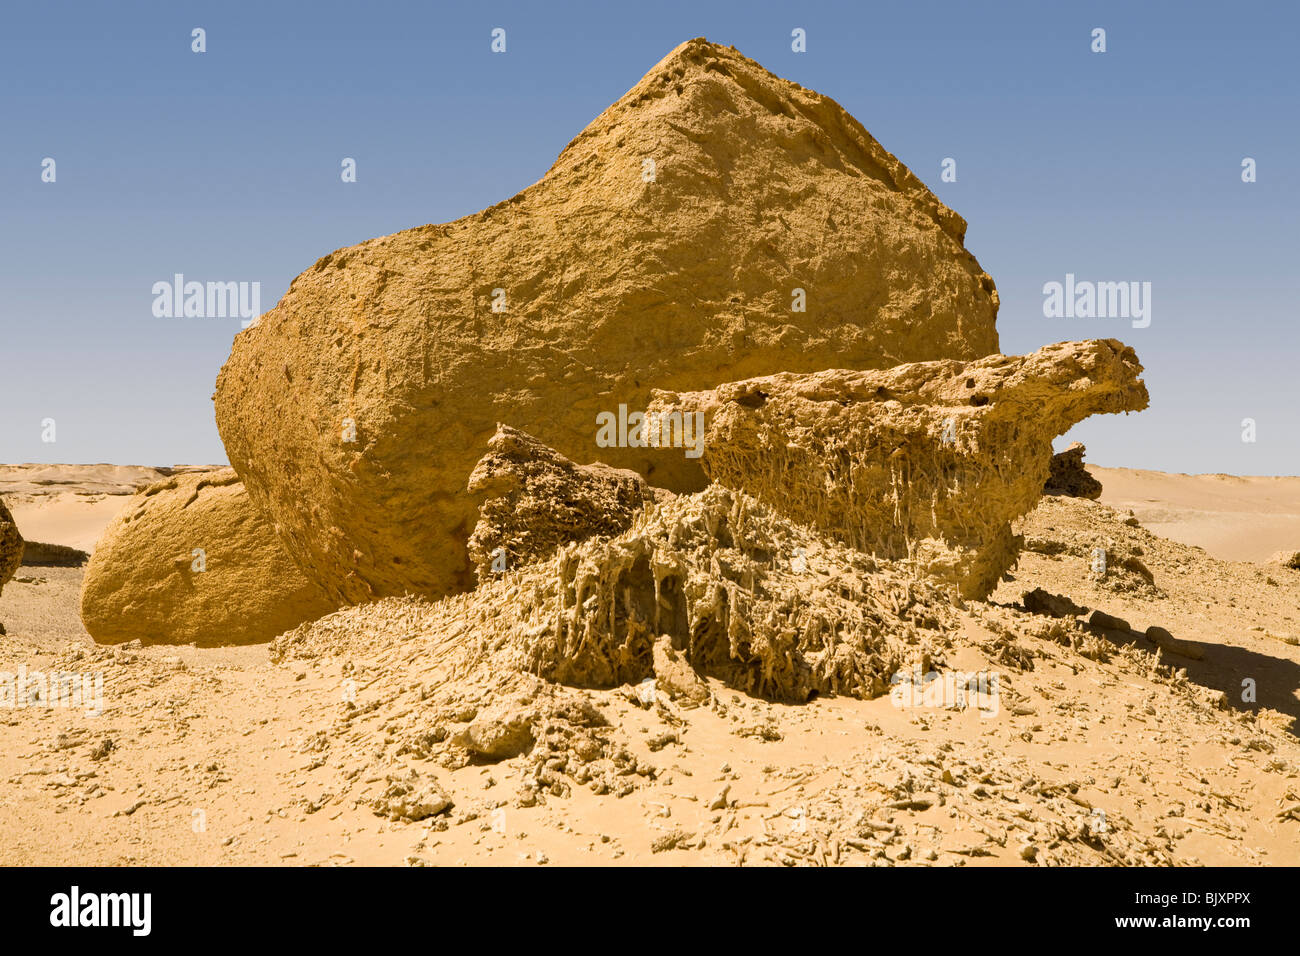 Fossilised mangrove tree roots in the Valley of The Whales, Wadi El-Hitan, Western Desert of Egypt - Stock Image